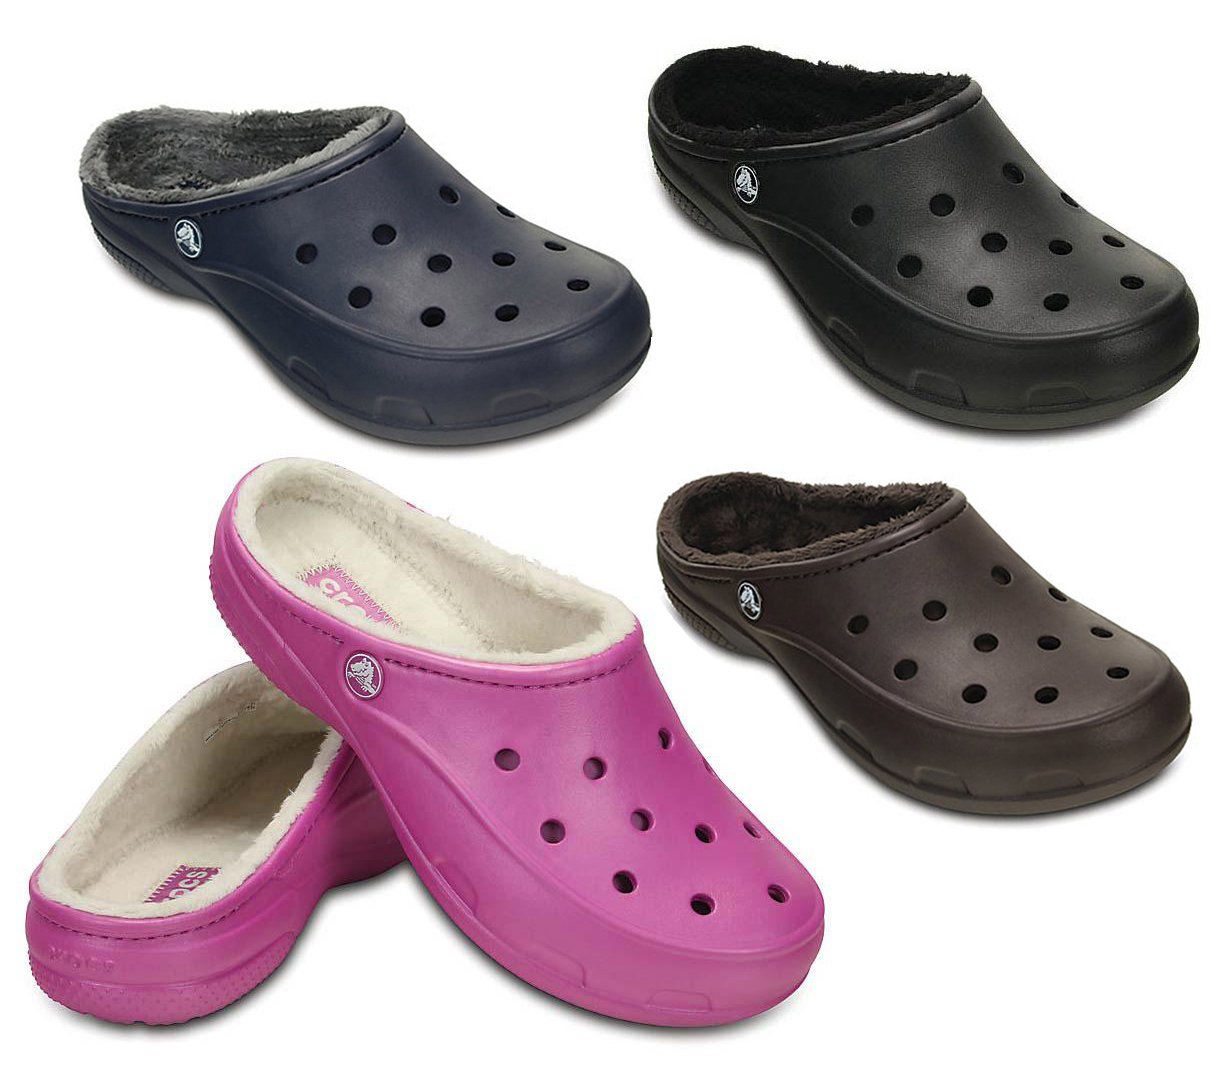 New Womens Crocs Freesail Fur Lined Comfort Clogs Warm Slippers Shoes Size  3-9